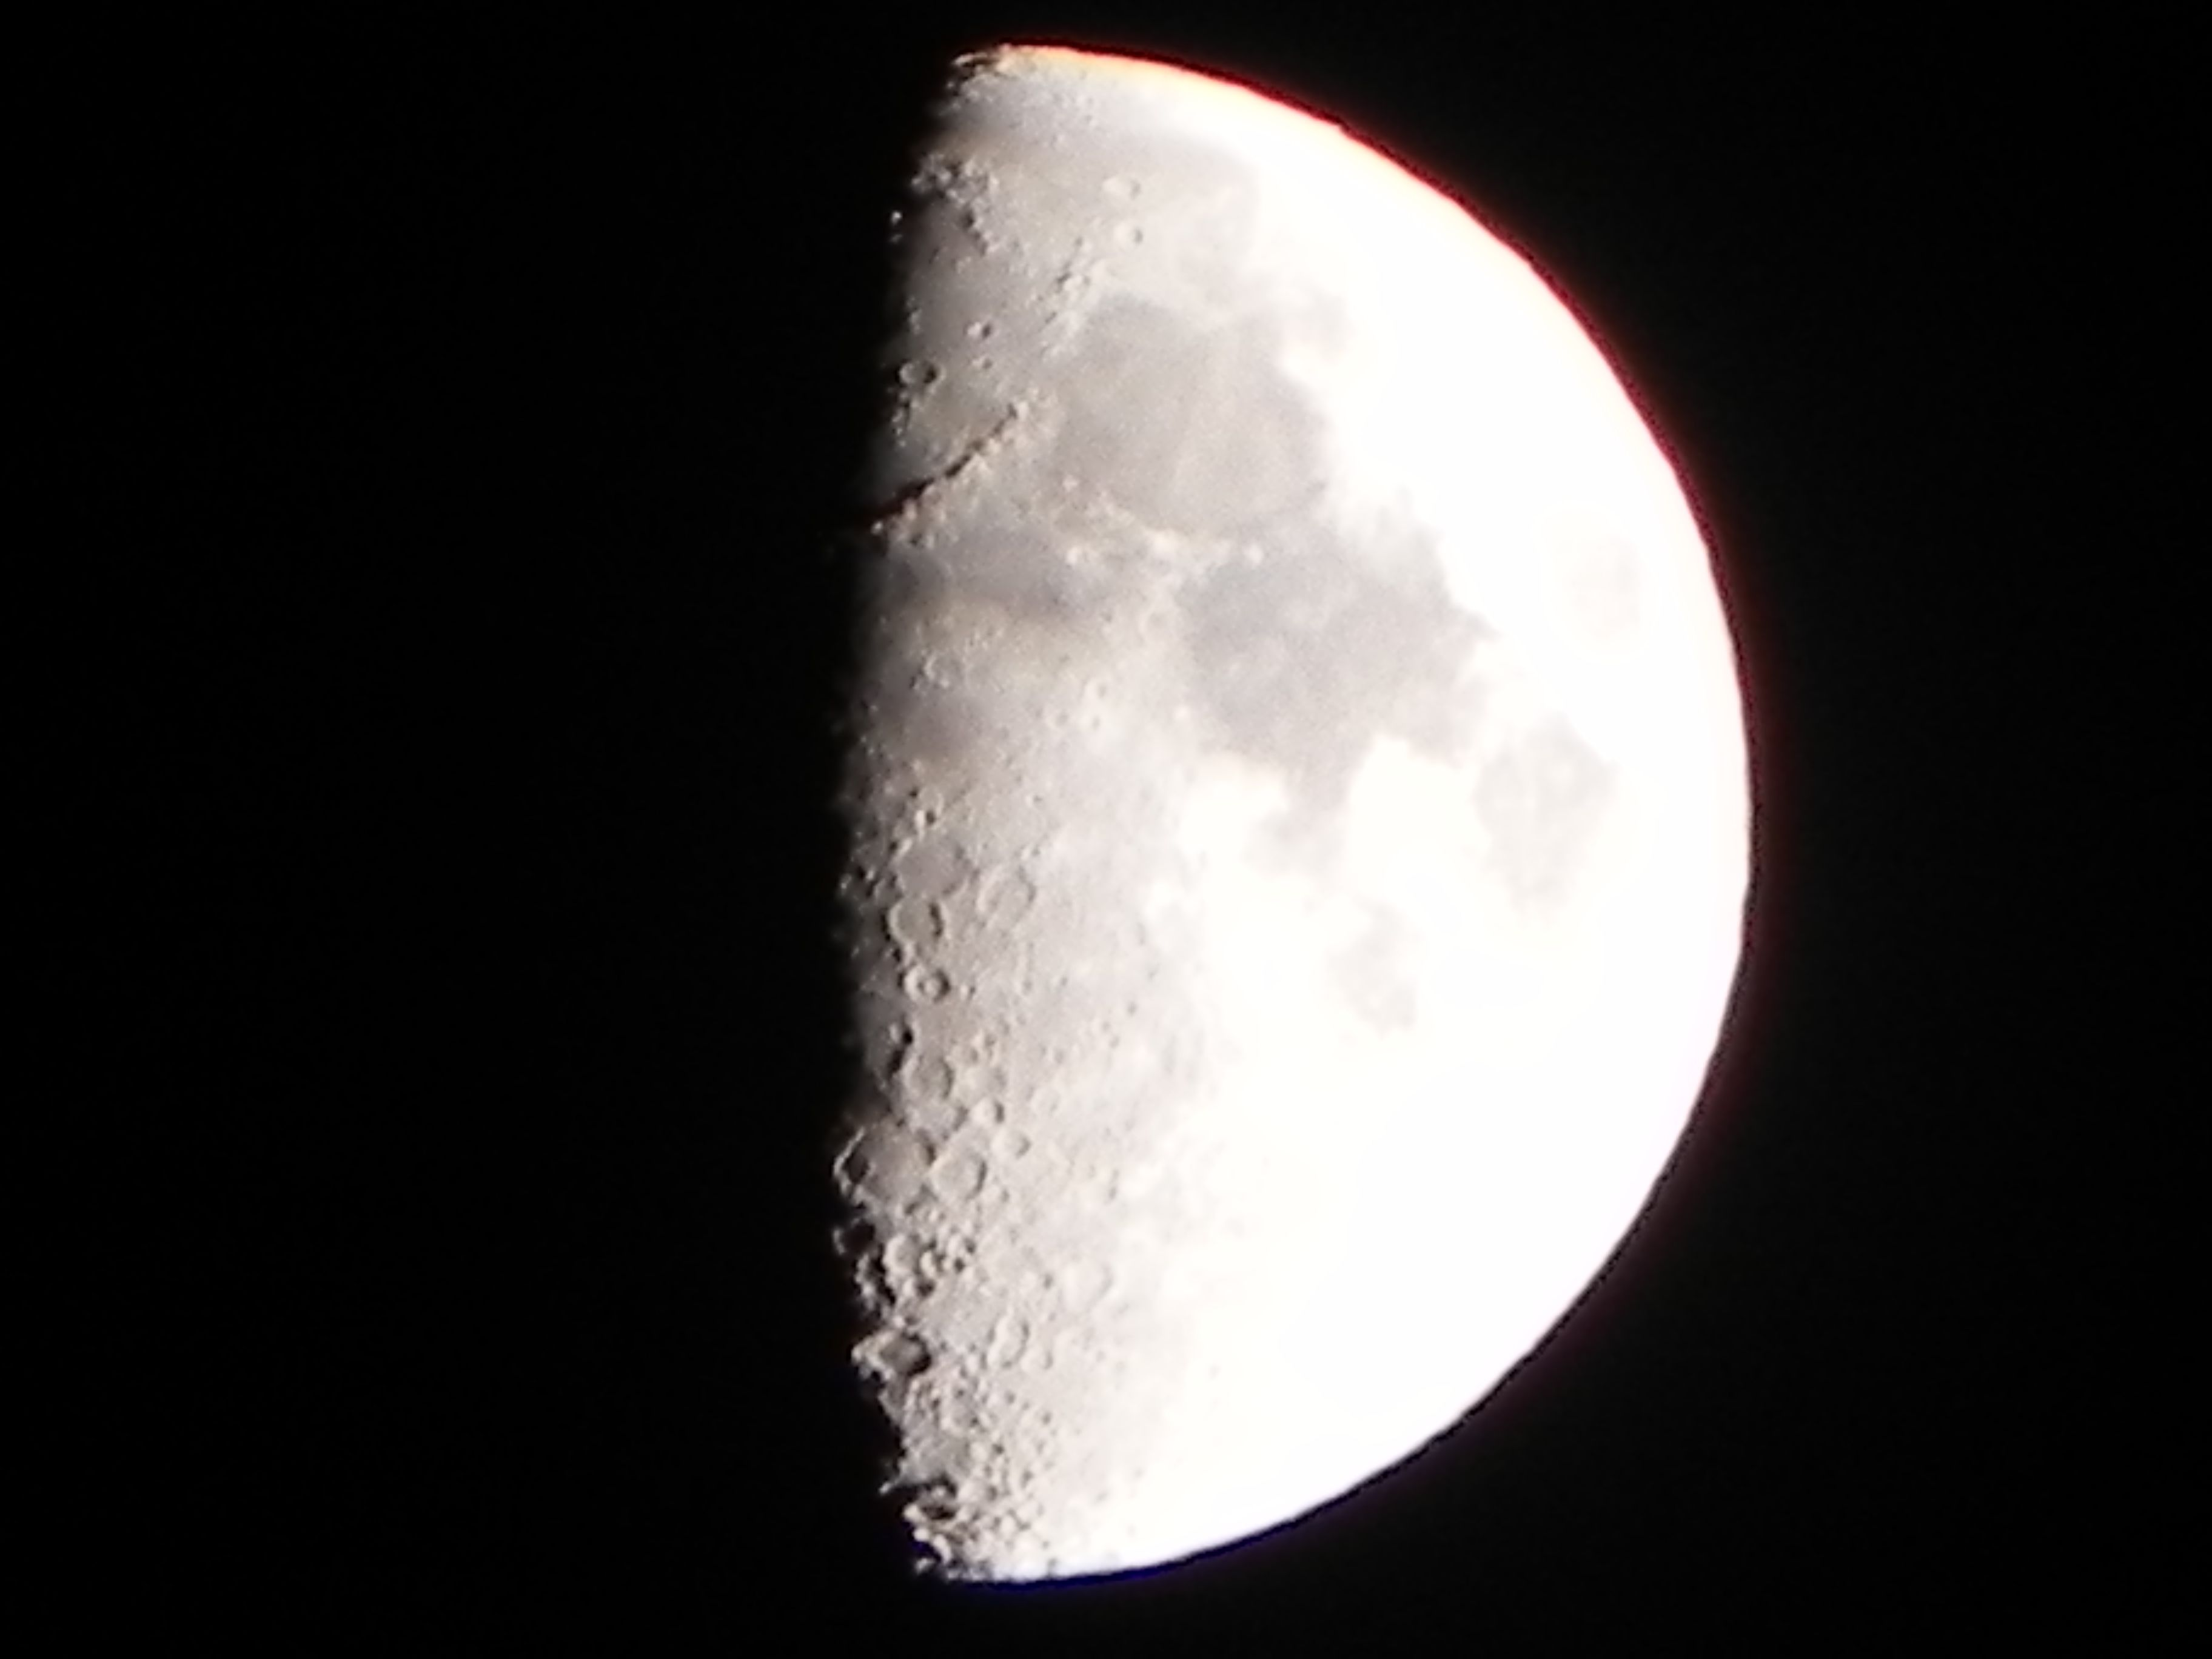 Half Moon. i took this pic in year 2010 by Nikon camera.